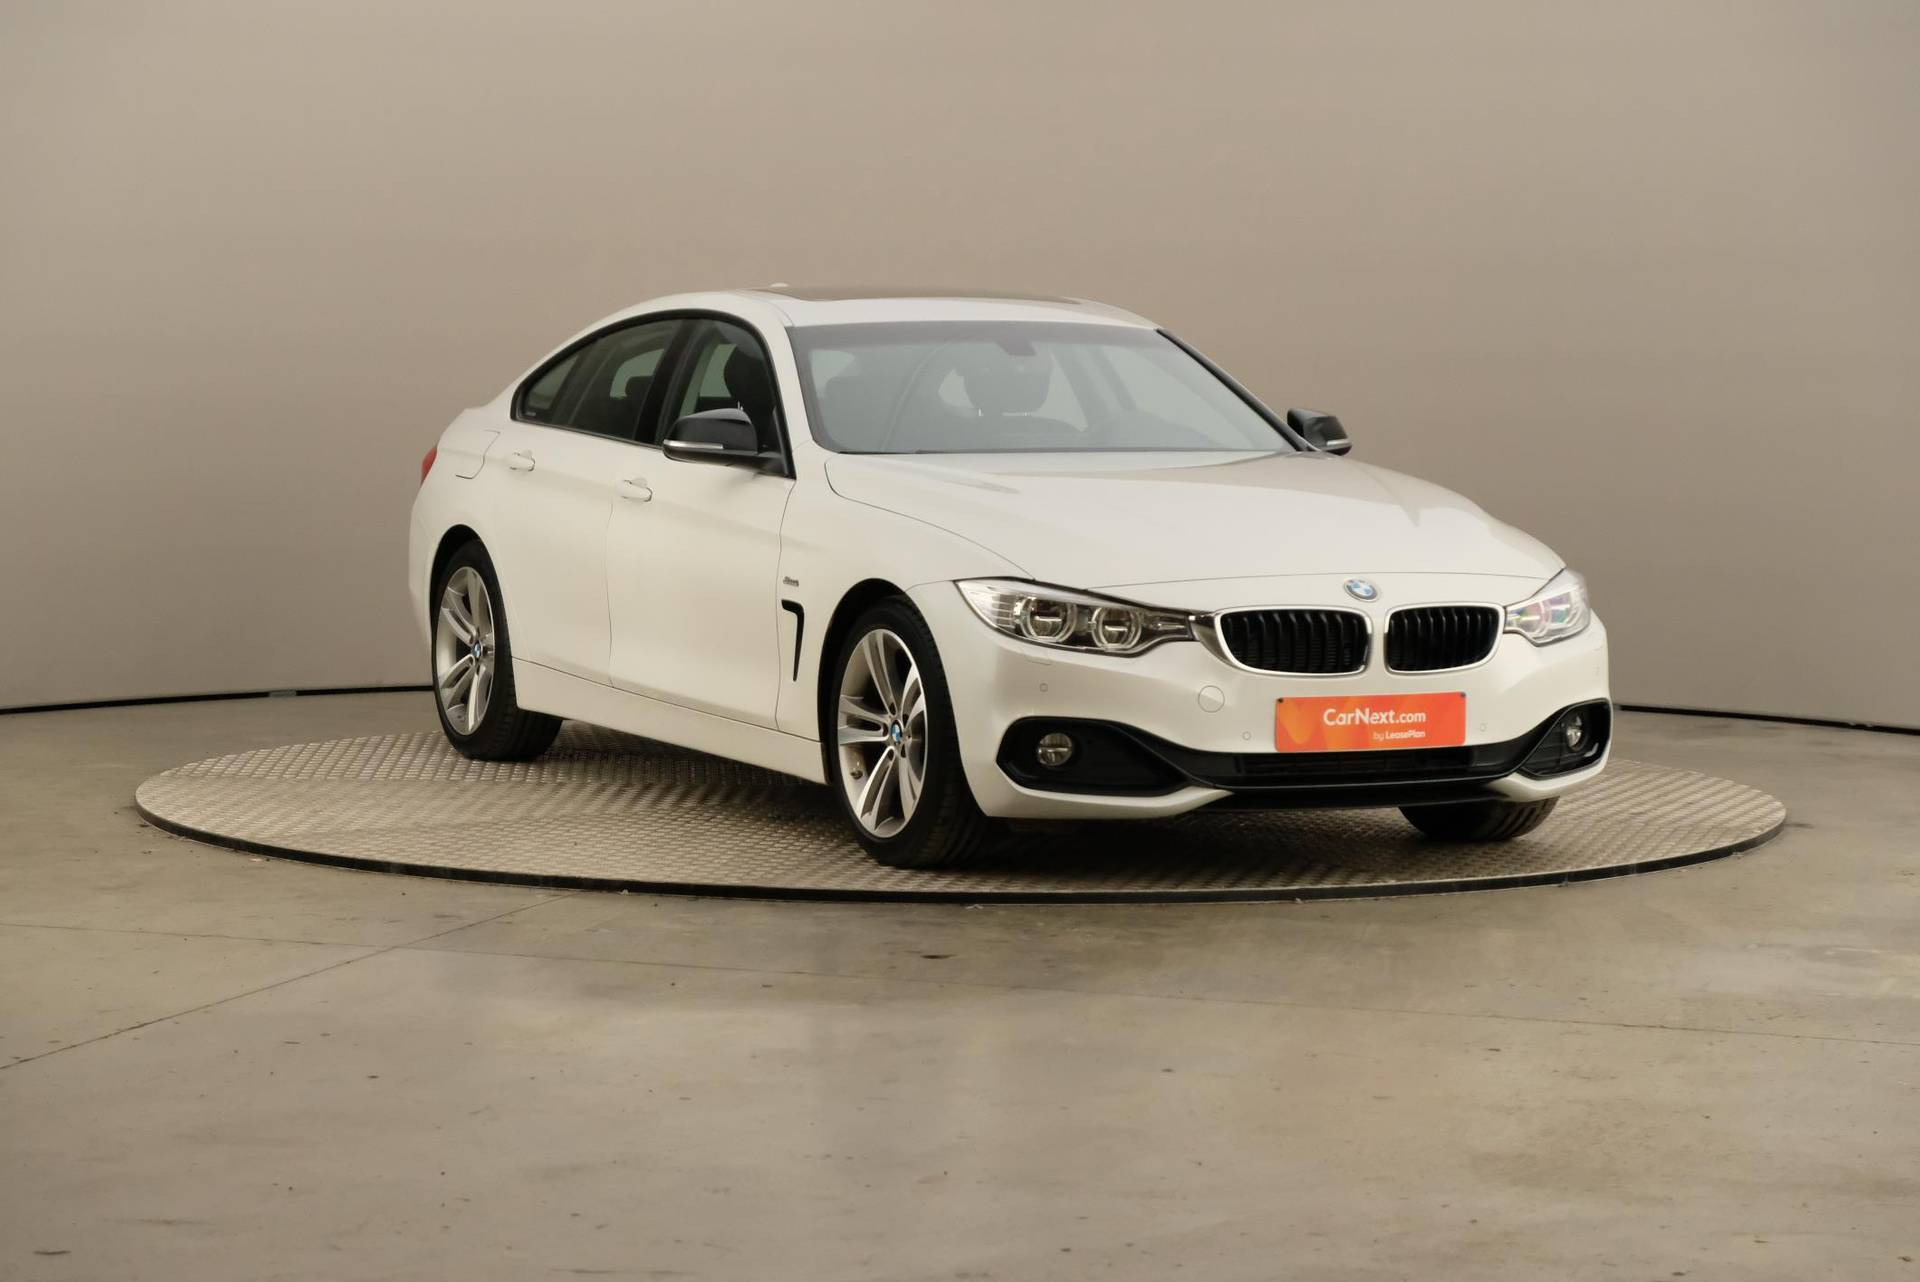 BMW 4 gran coupé 420 dA SPORT LINE LED GPS PROF PDC OPEN DAK/TO HARMAN KARDON, 360-image29